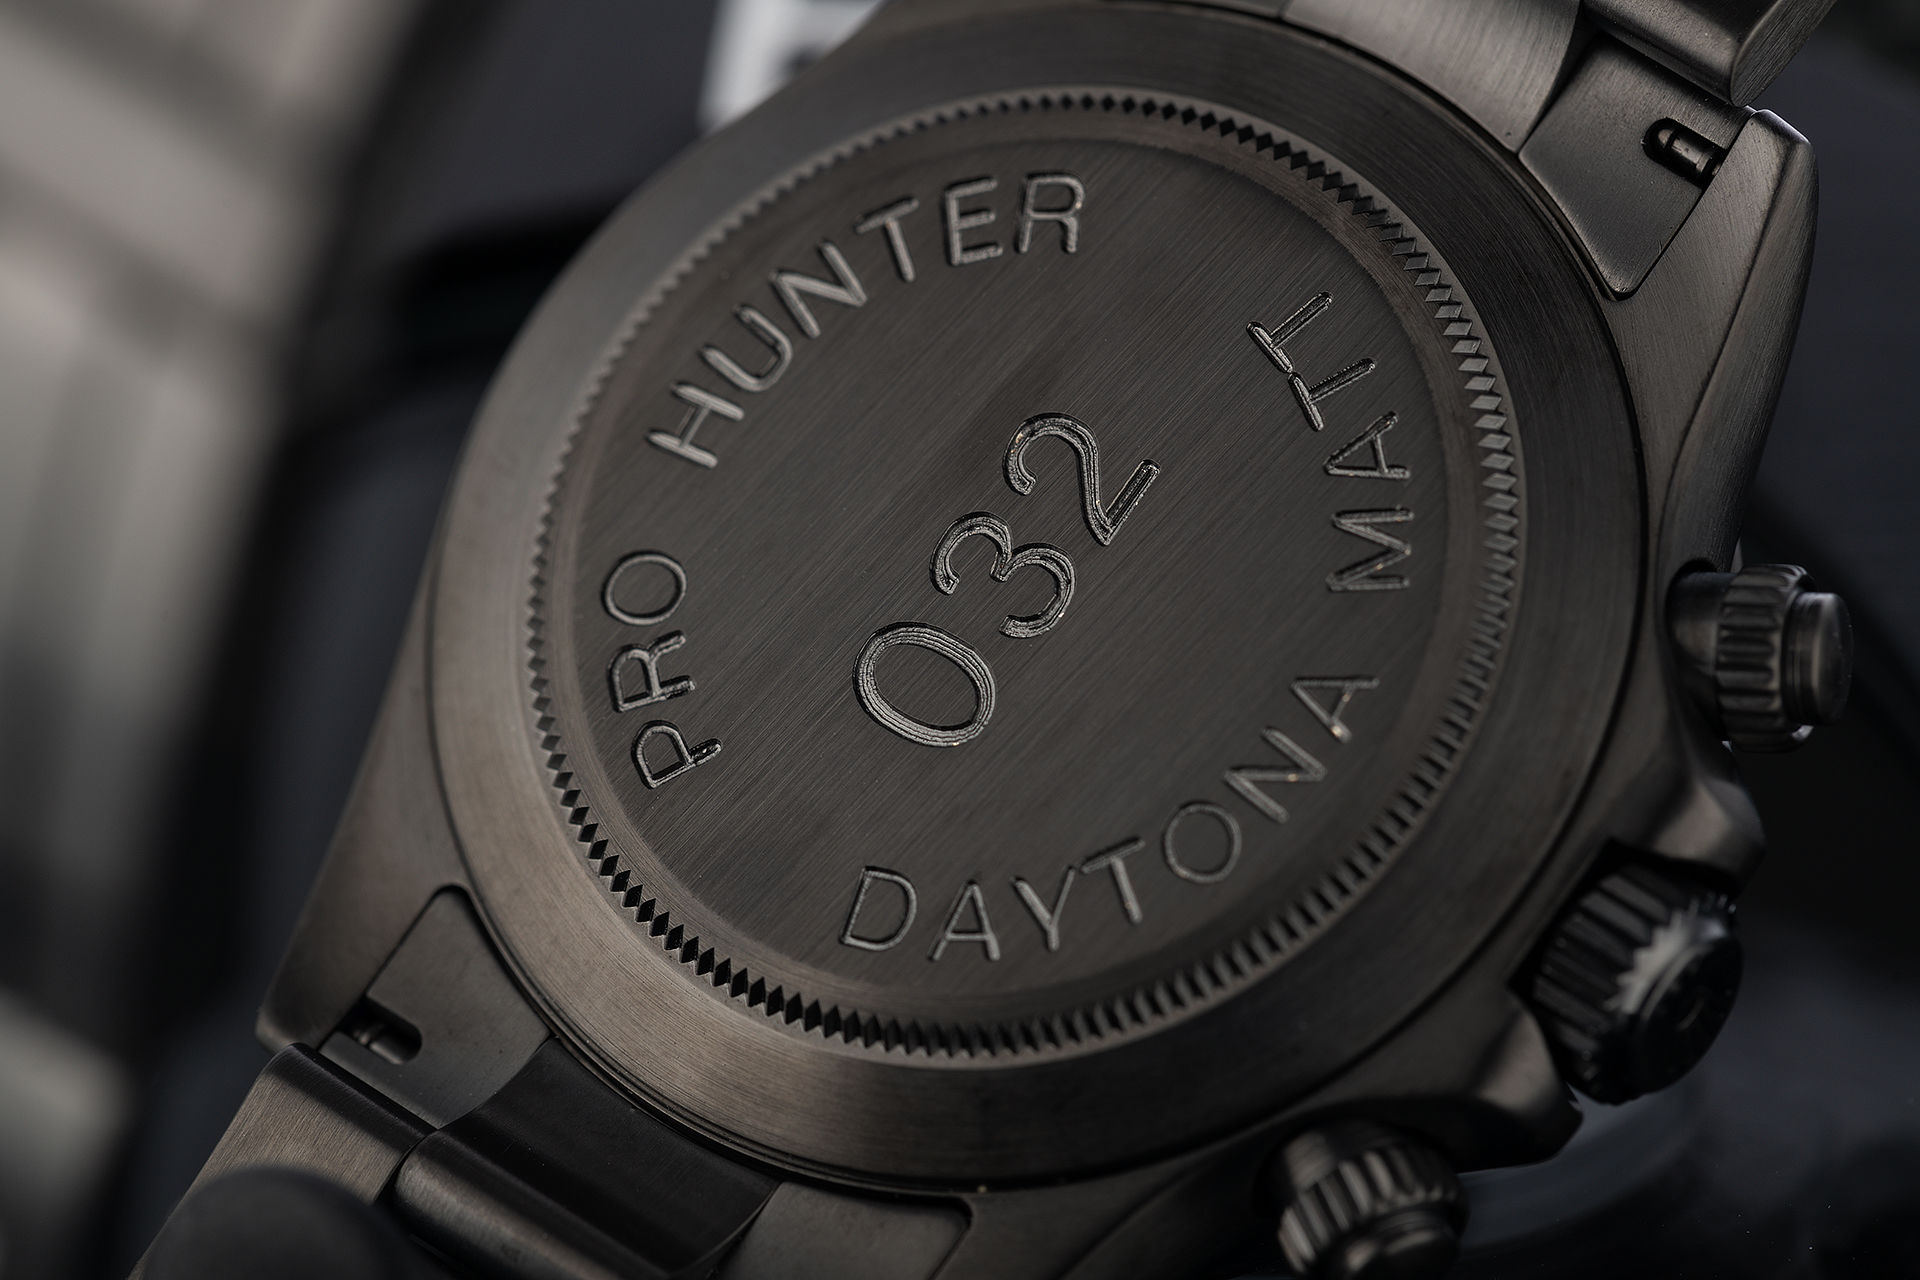 ref 116520 | Limited Edition 'One of 100' | Pro Hunter Cosmograph Daytona